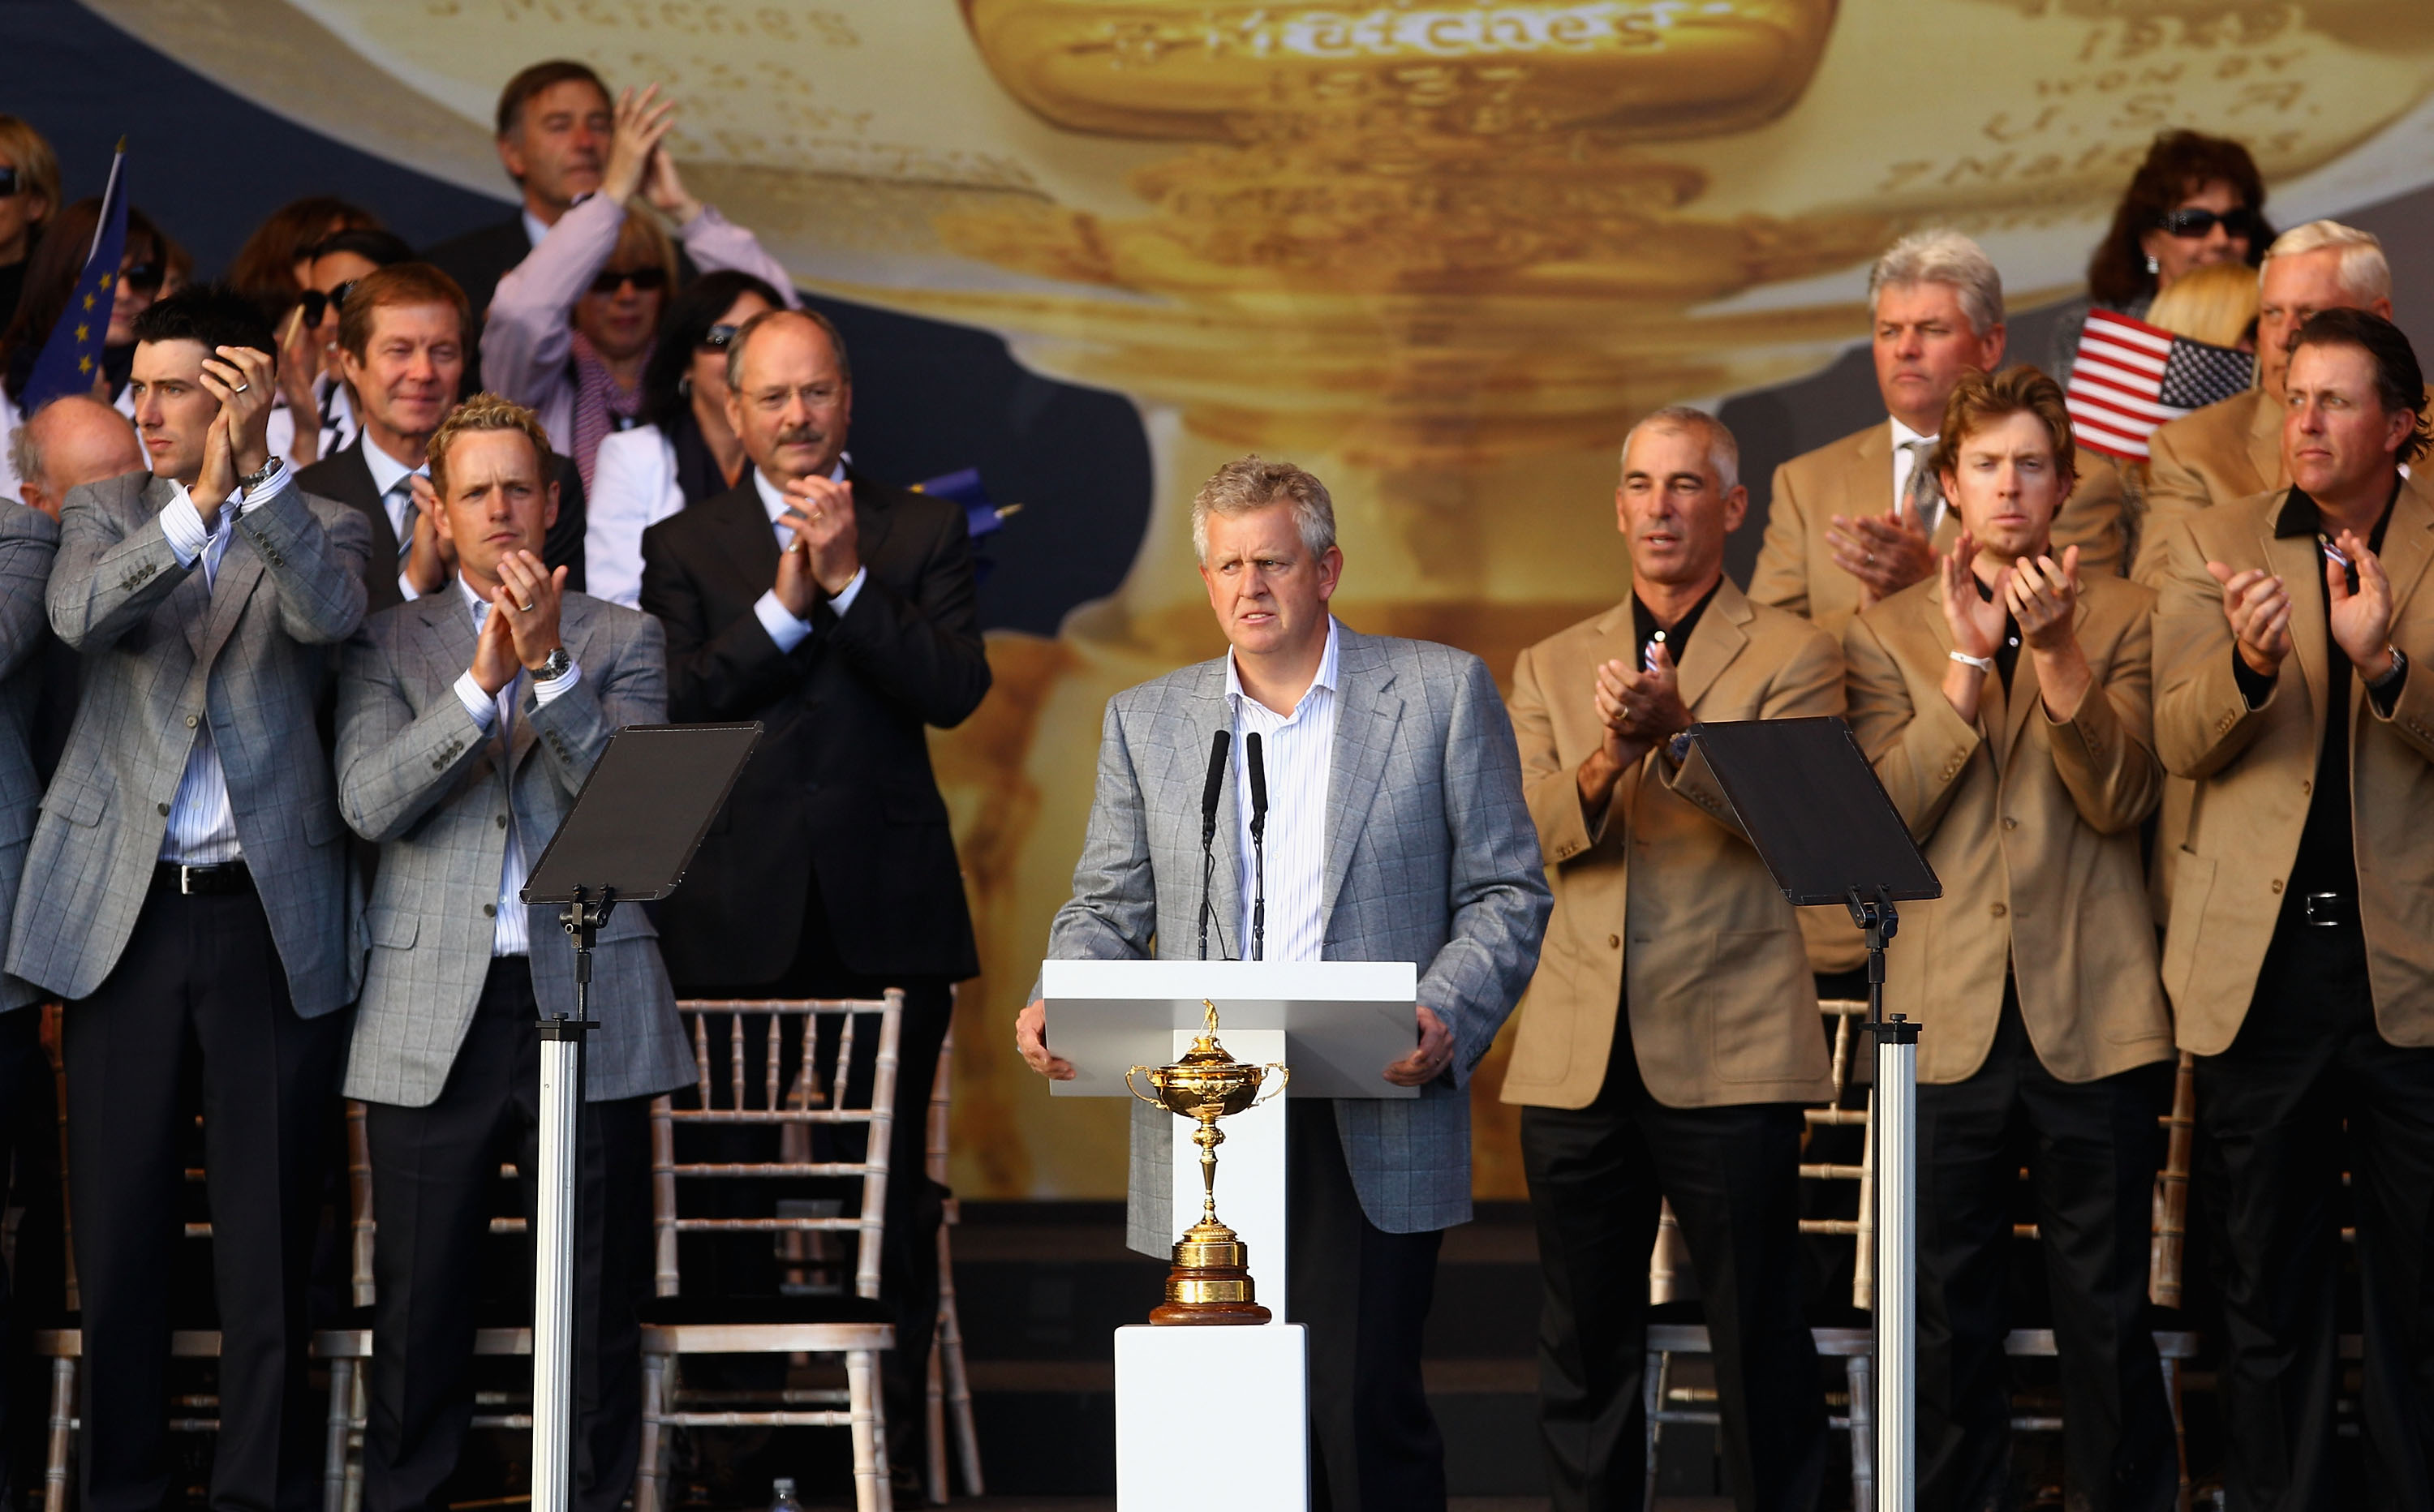 NEWPORT, WALES - OCTOBER 04:  European Team Captain Colin Montgomerie speaks at the closing cermonies following Europe's 14.5 to 13.5 victory over the USA at the 2010 Ryder Cup at the Celtic Manor Resort on October 4, 2010 in Newport, Wales.  (Photo by Ri